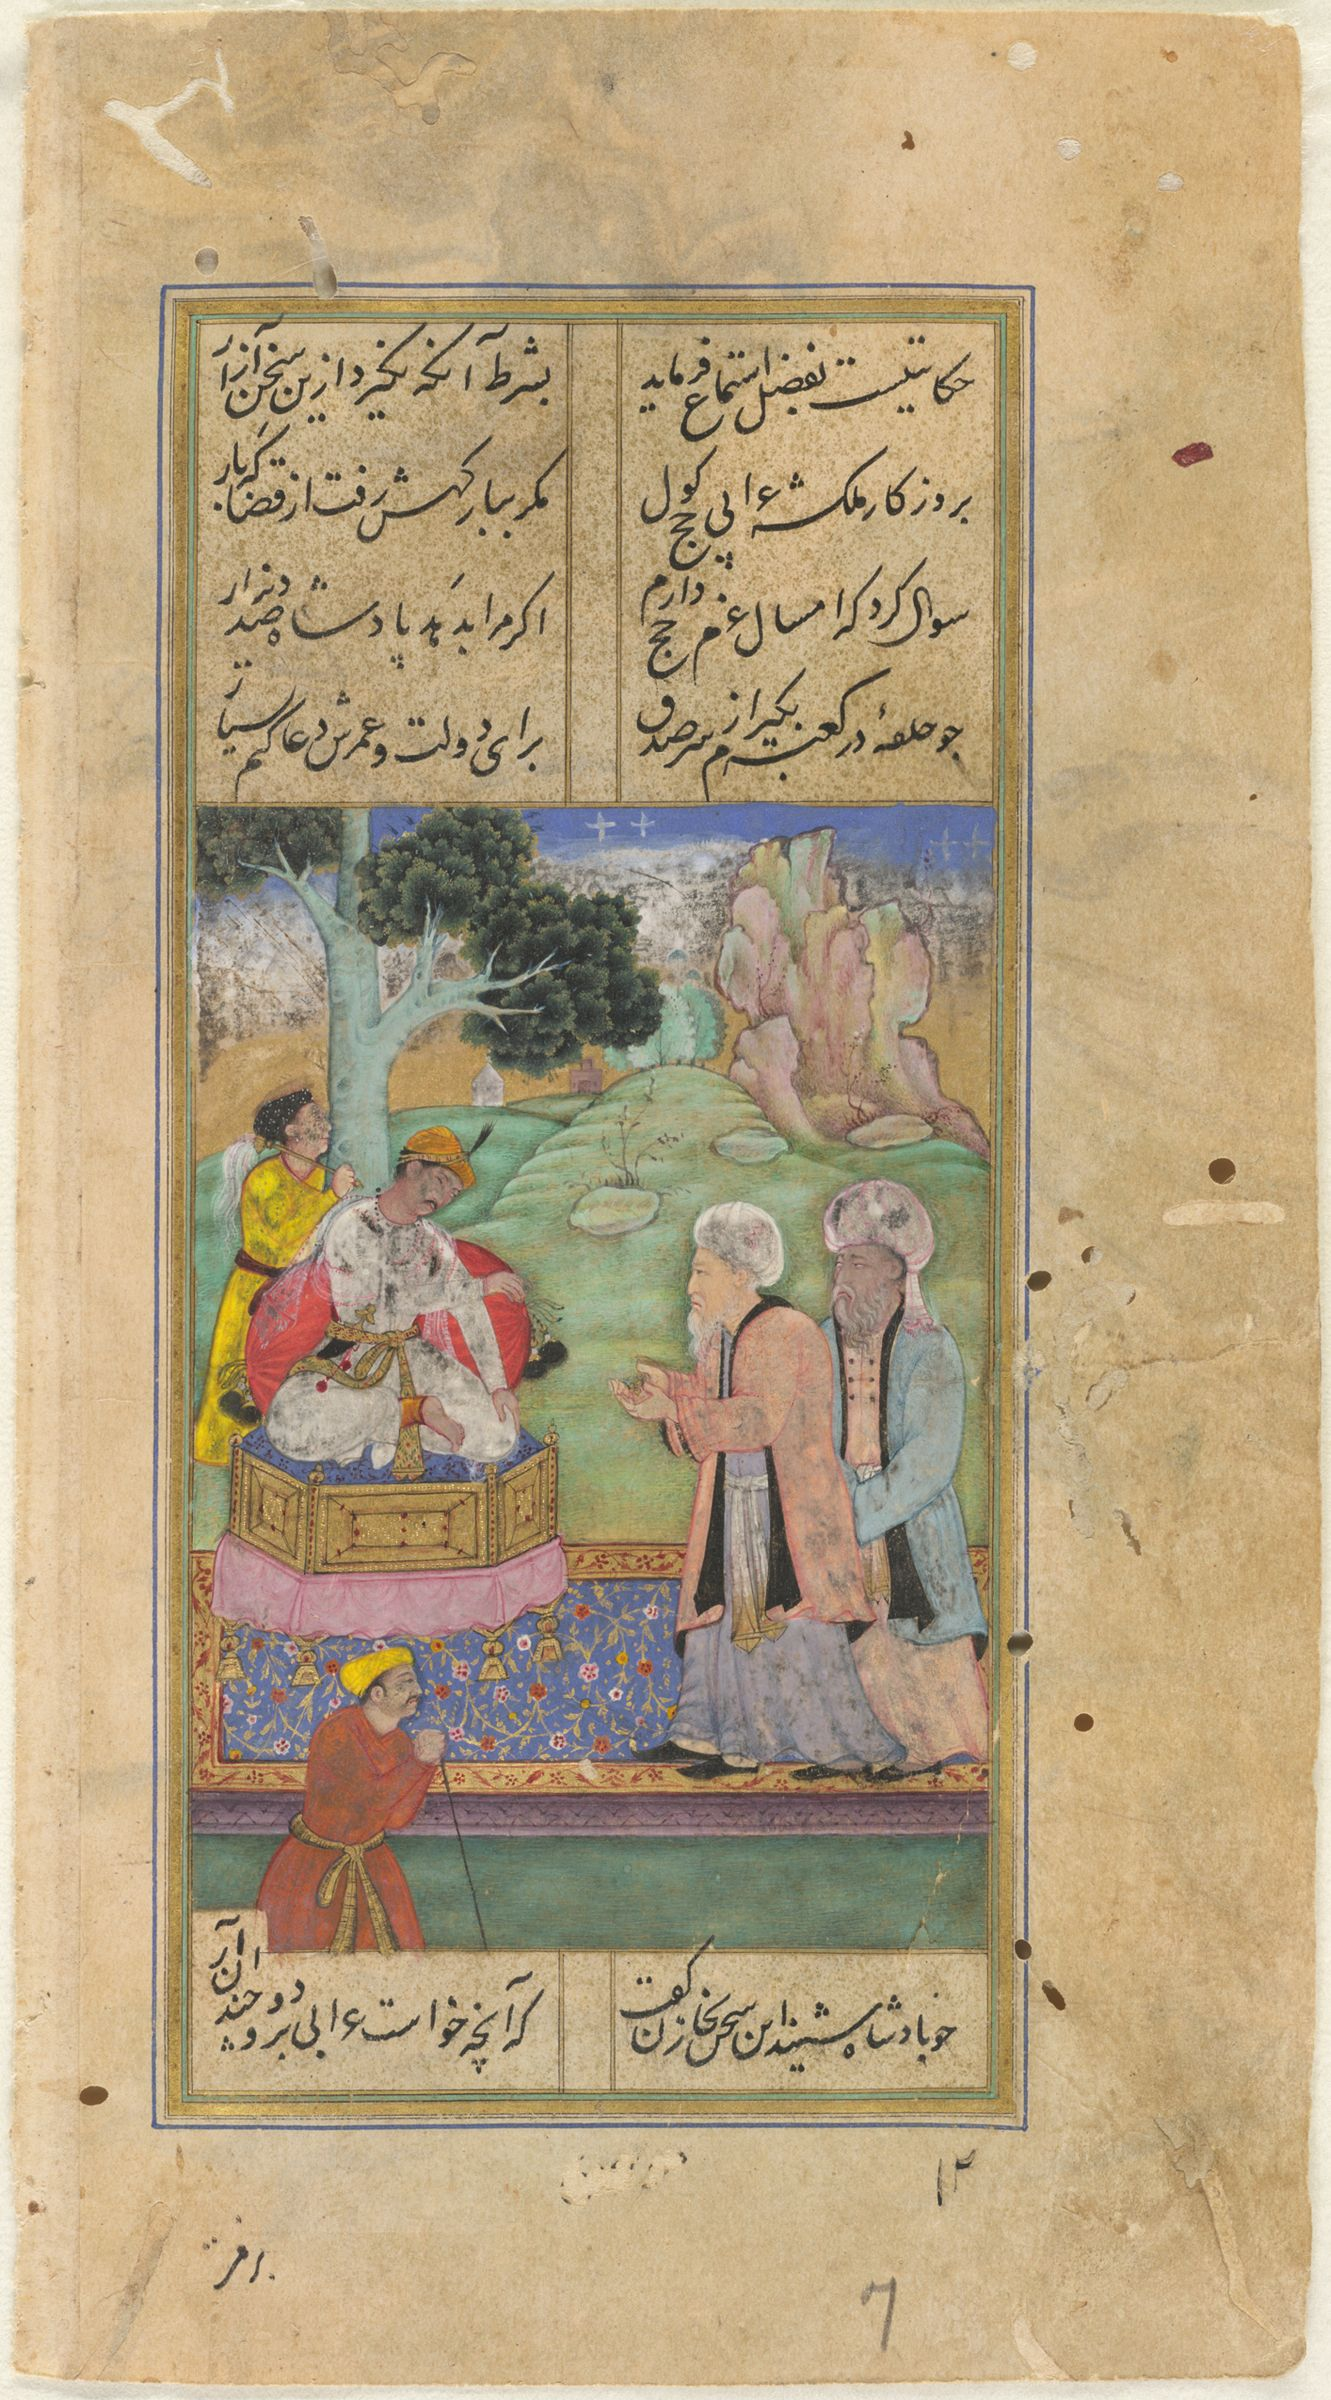 Malikshah's Double Gift (Painting, Verso; Text, Recto), Folio 258 From A Manuscript Of The Divan Of Anvari